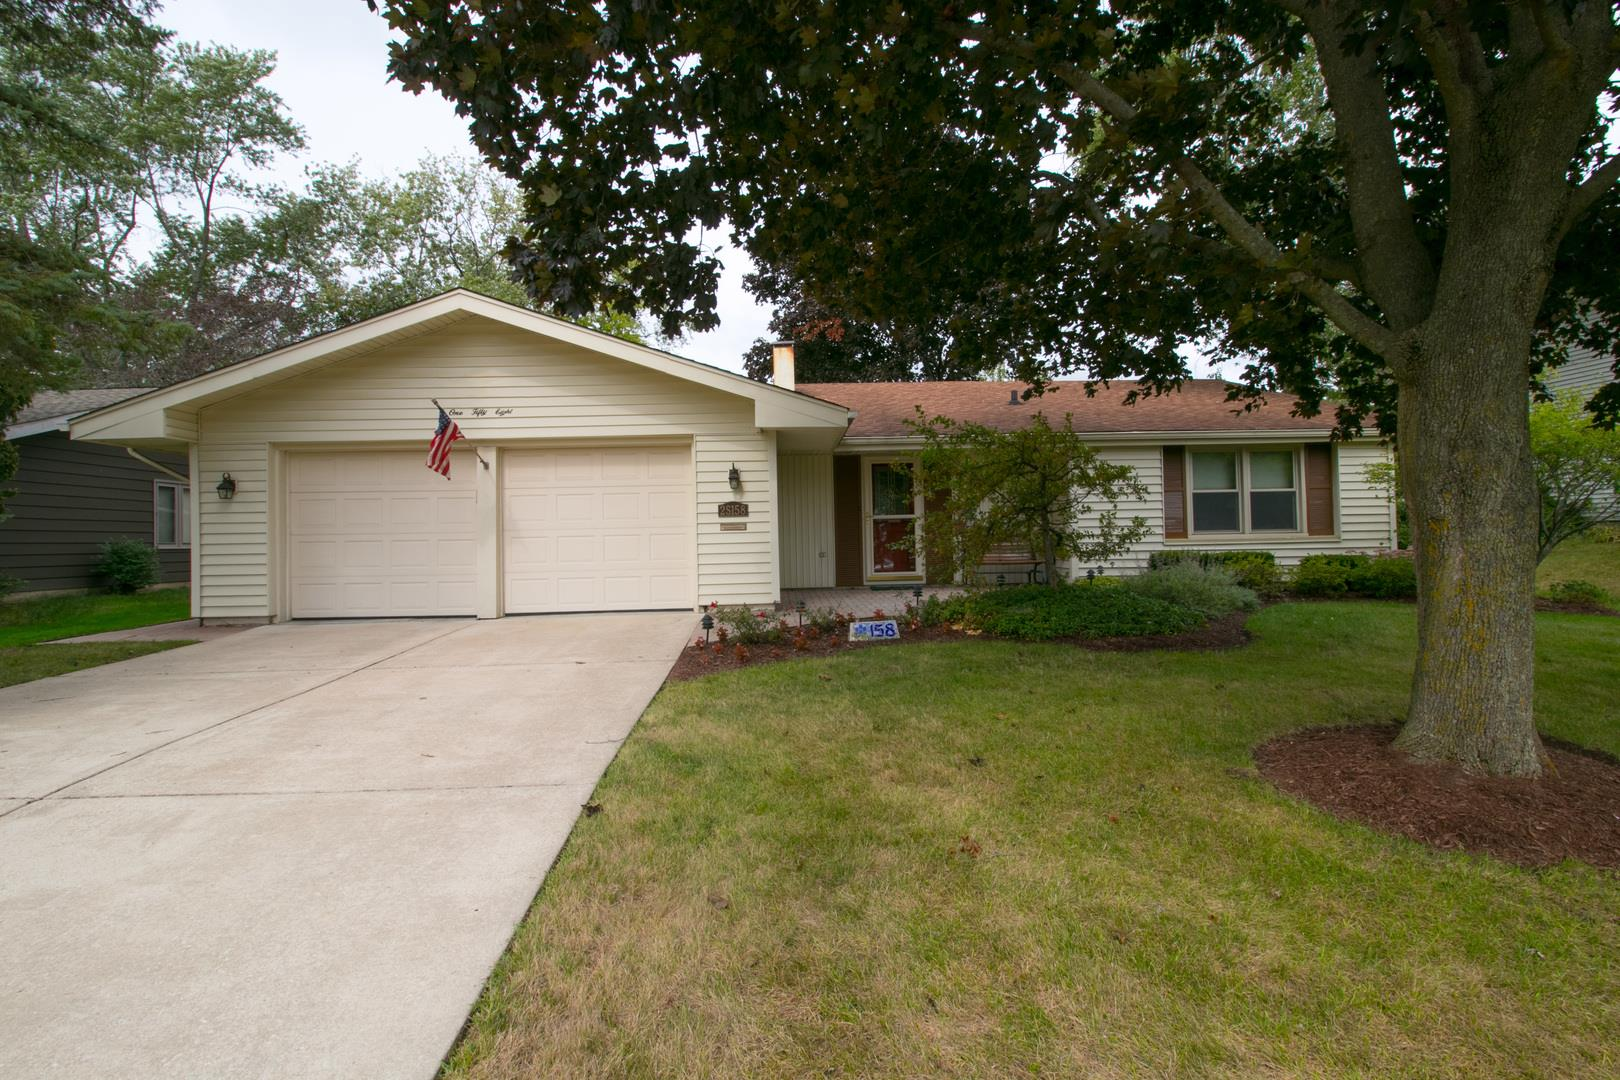 2S158 Mayfield Lane, Glen Ellyn, IL 60137 - #: 10812925